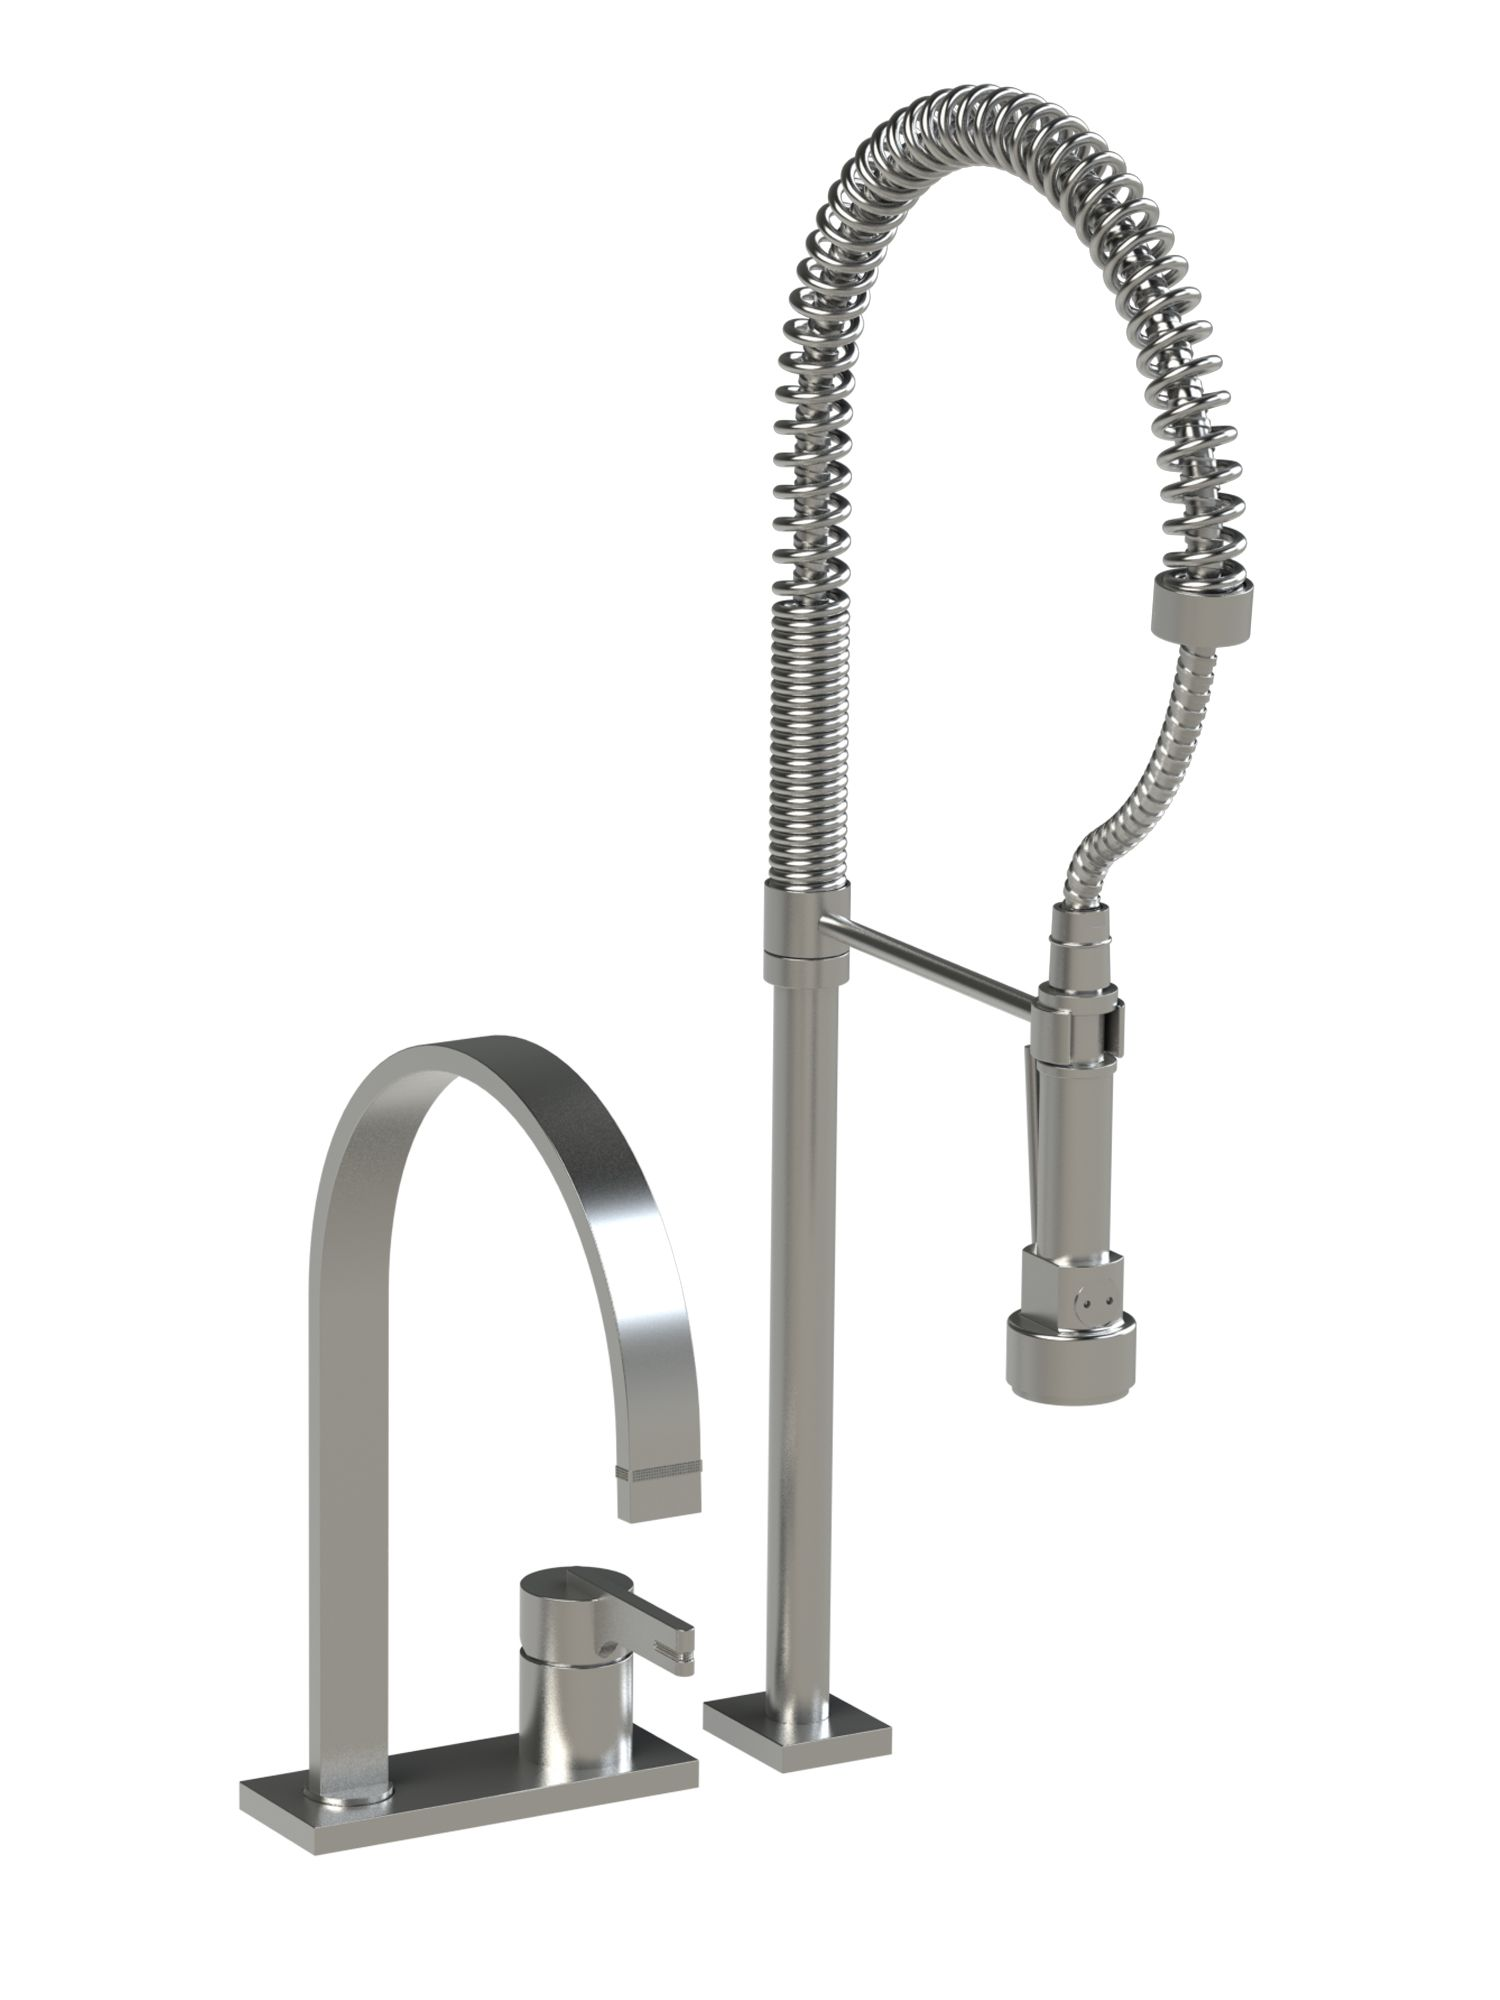 Modern Restaurant Style Faucet Rubi R10 from Rubinet.com Comes in 10 ...